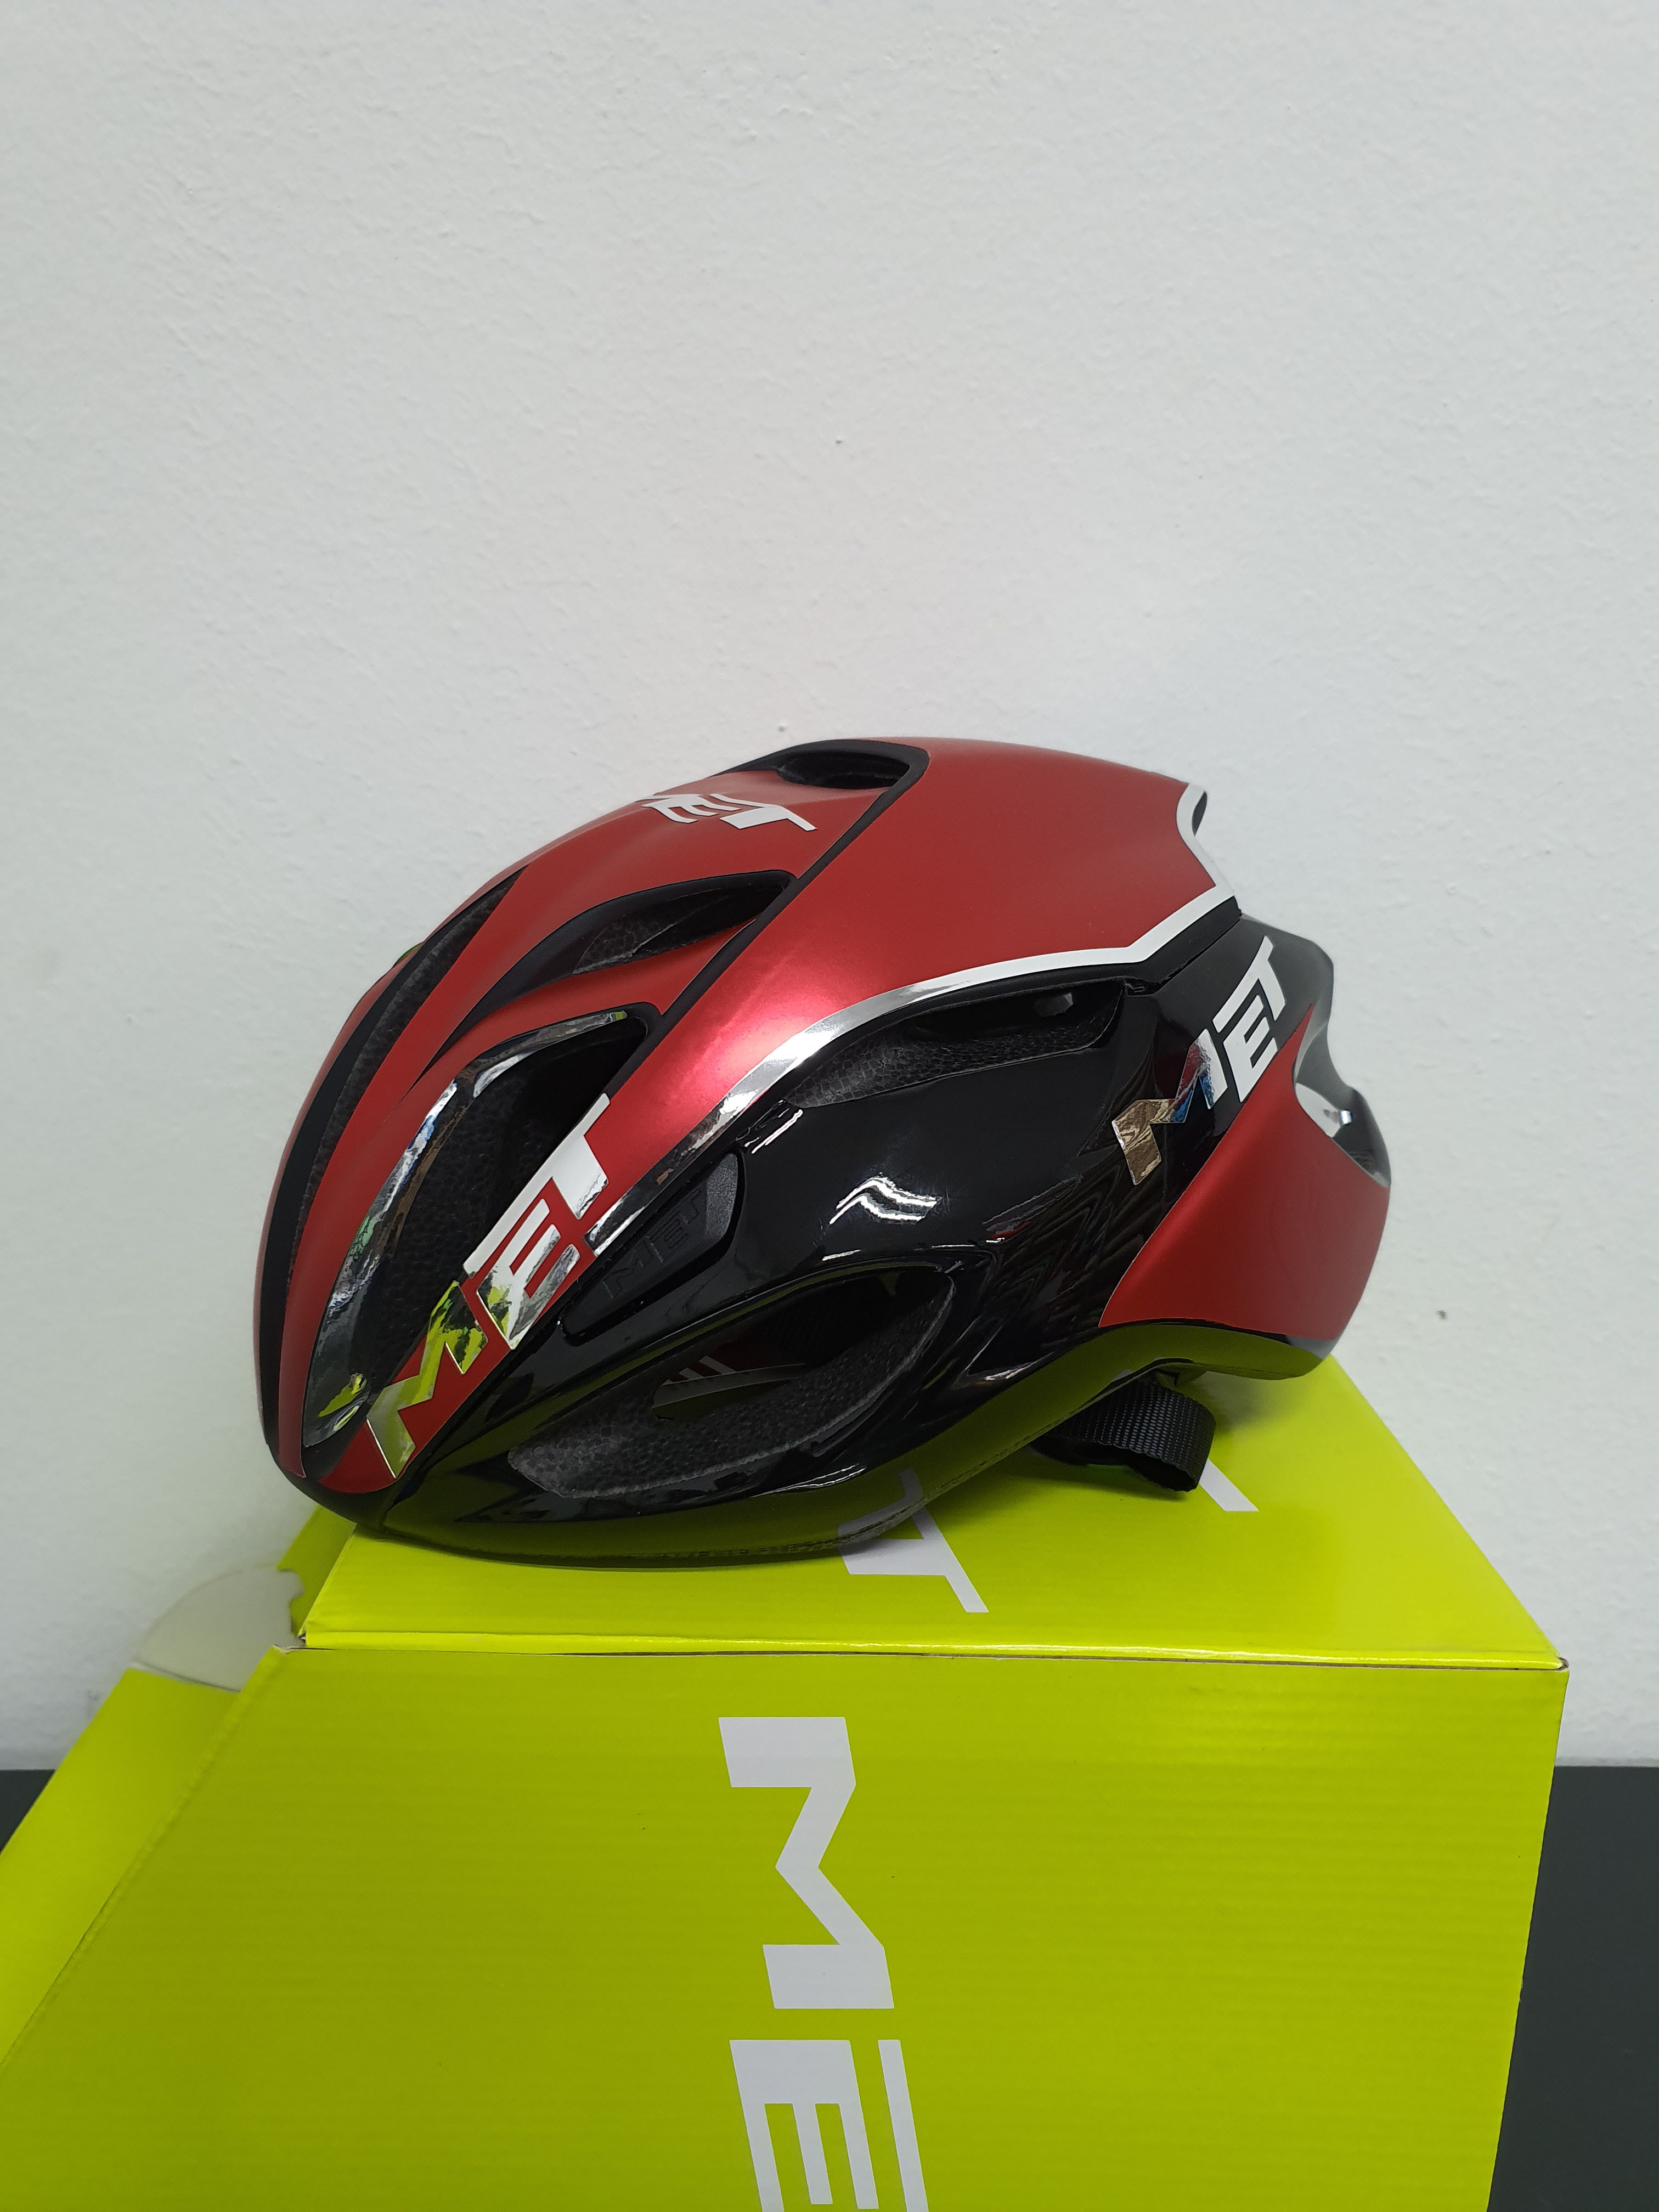 Custom Decal for MET Helmets in Red and Black